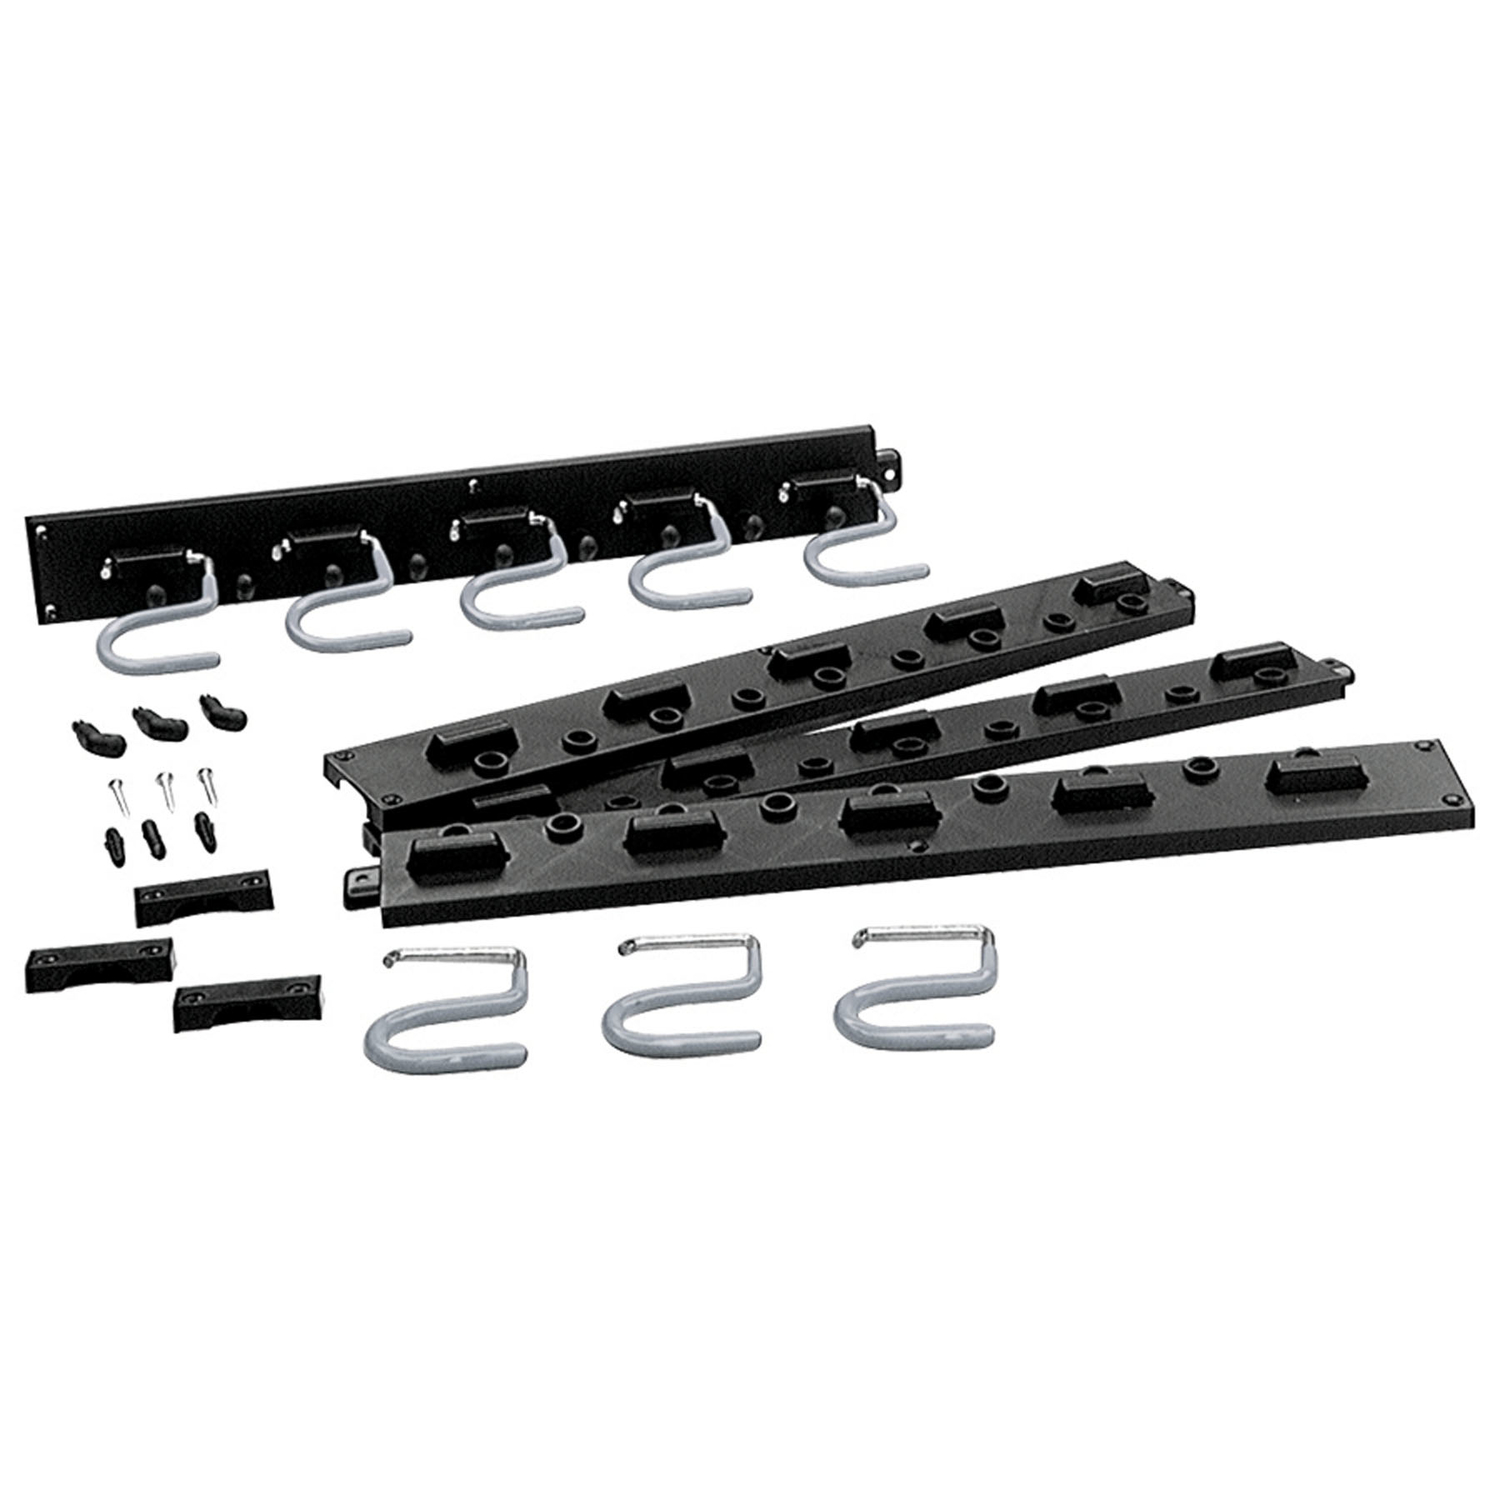 Crawford  64 in. D Plastic  12 lb. capacity 1 pk Black  Rack